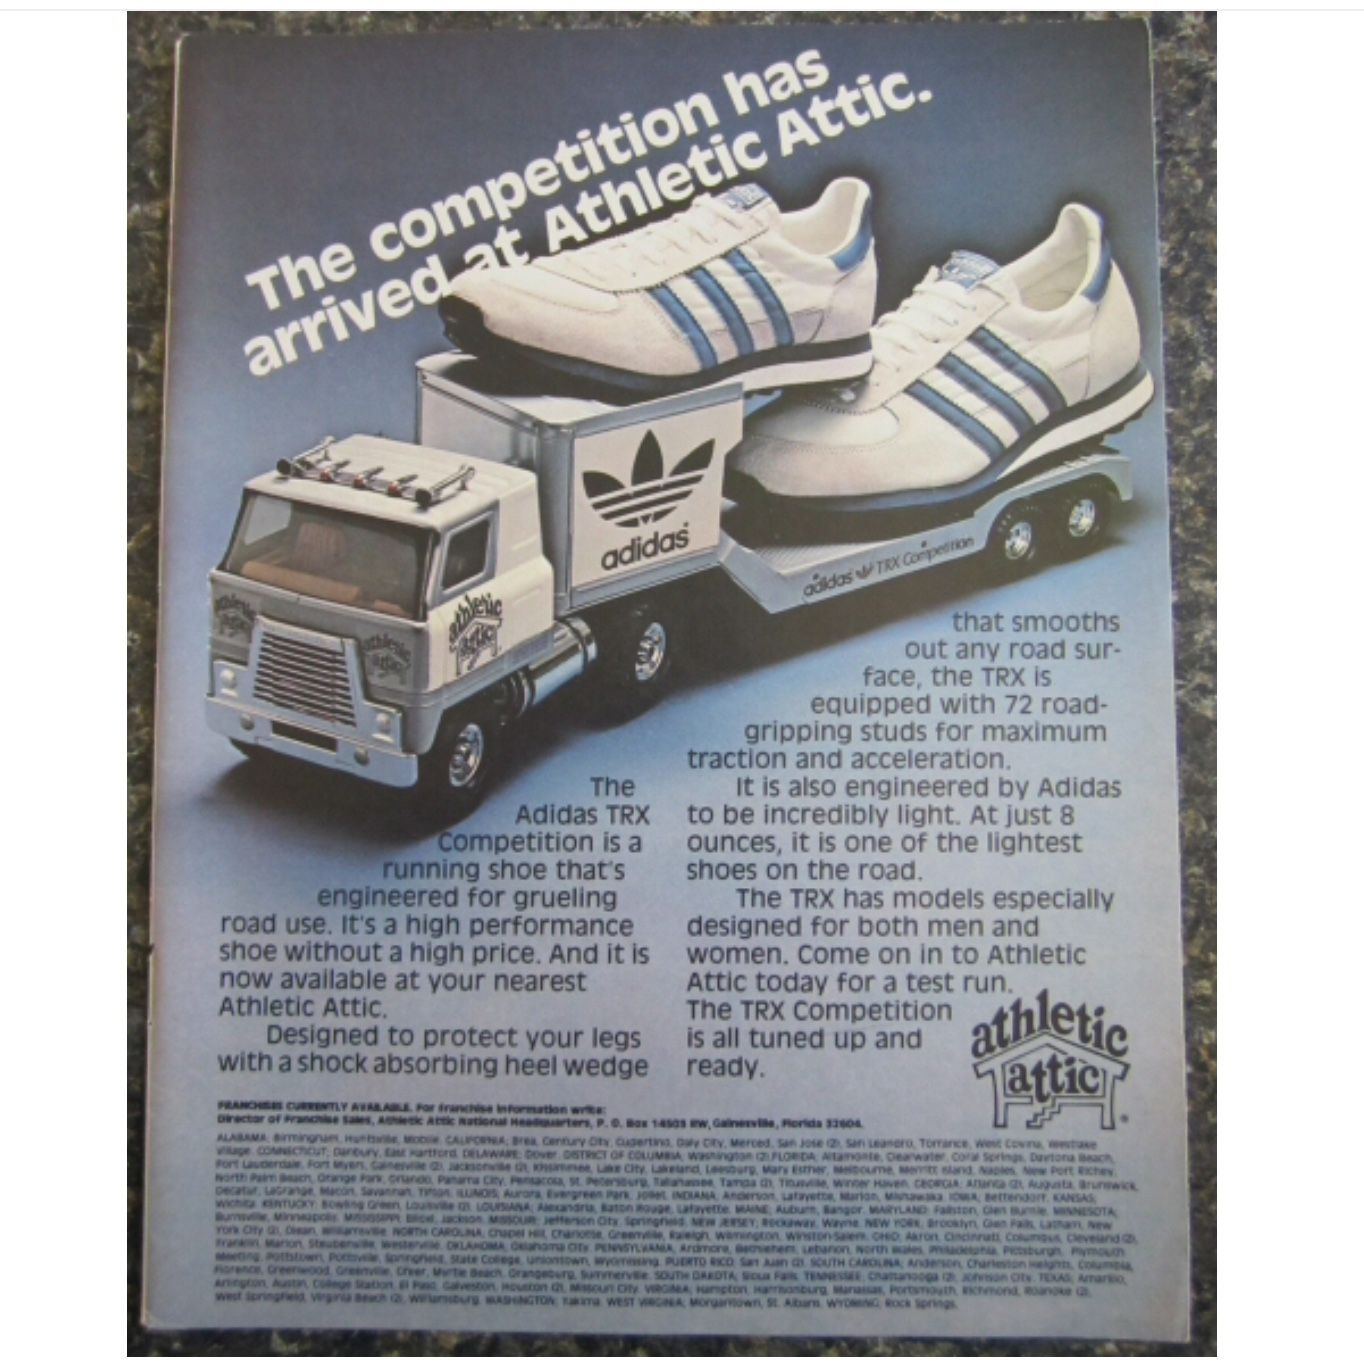 Pin By Mad Fashion Garage On Adidas Originals Trainers Sneakers Vintage Shoe Adverts Posters Image Archive History Rare Promotional Advertisements All Adidas Footwear S Adidas Retro Sneakers Adidas Ad